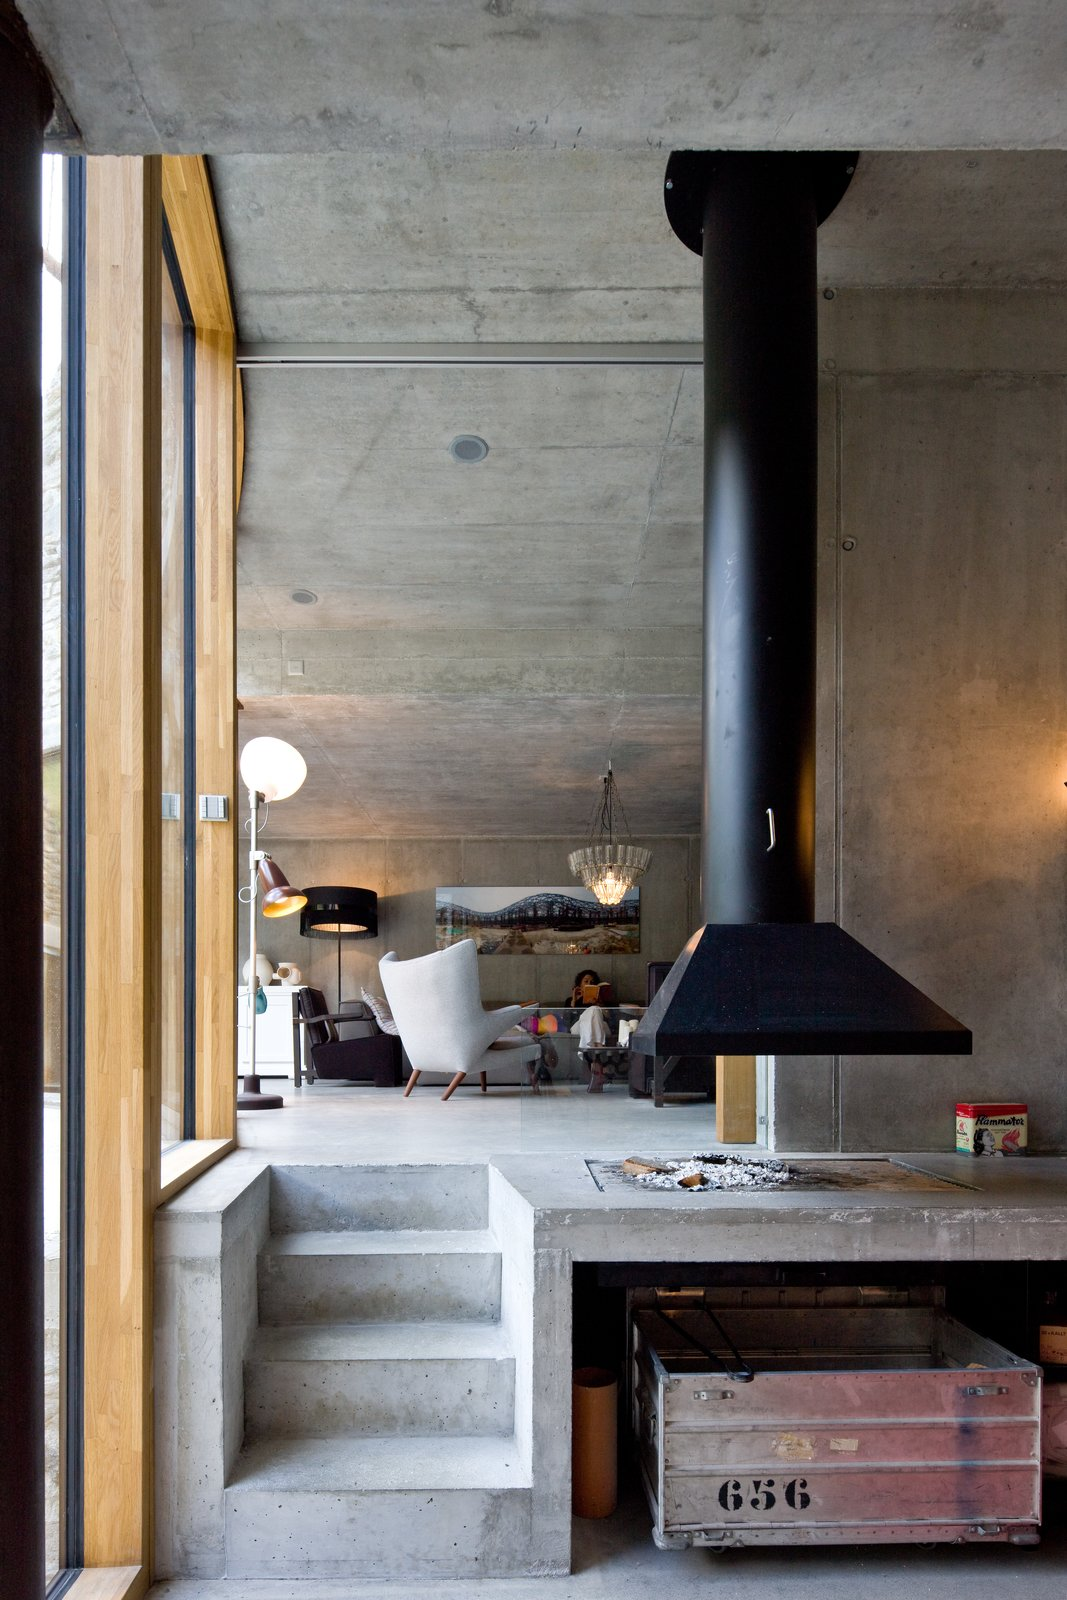 Living Room, Hanging Fireplace, Concrete Floor, Chair, Pendant Lighting, and Floor Lighting  Photo 3 of 13 in Stay in a Swiss Vacation Home That's Literally Inside a Mountain